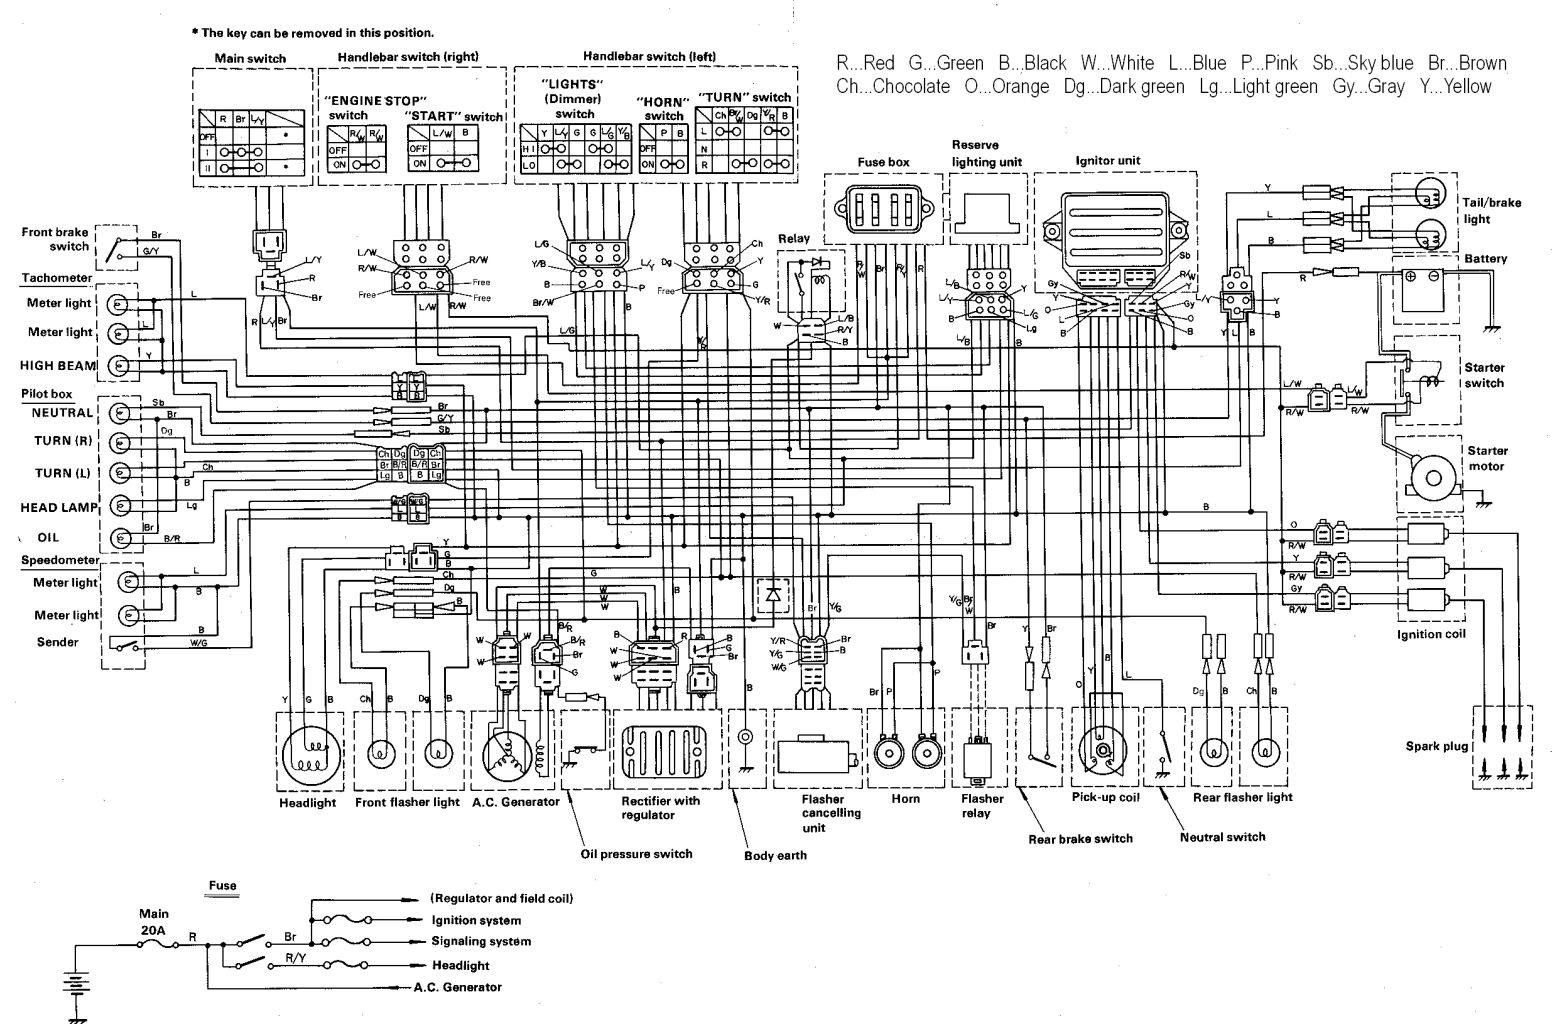 1977 Yamaha Xs 750 Wiring Diagram | Repair Manual on